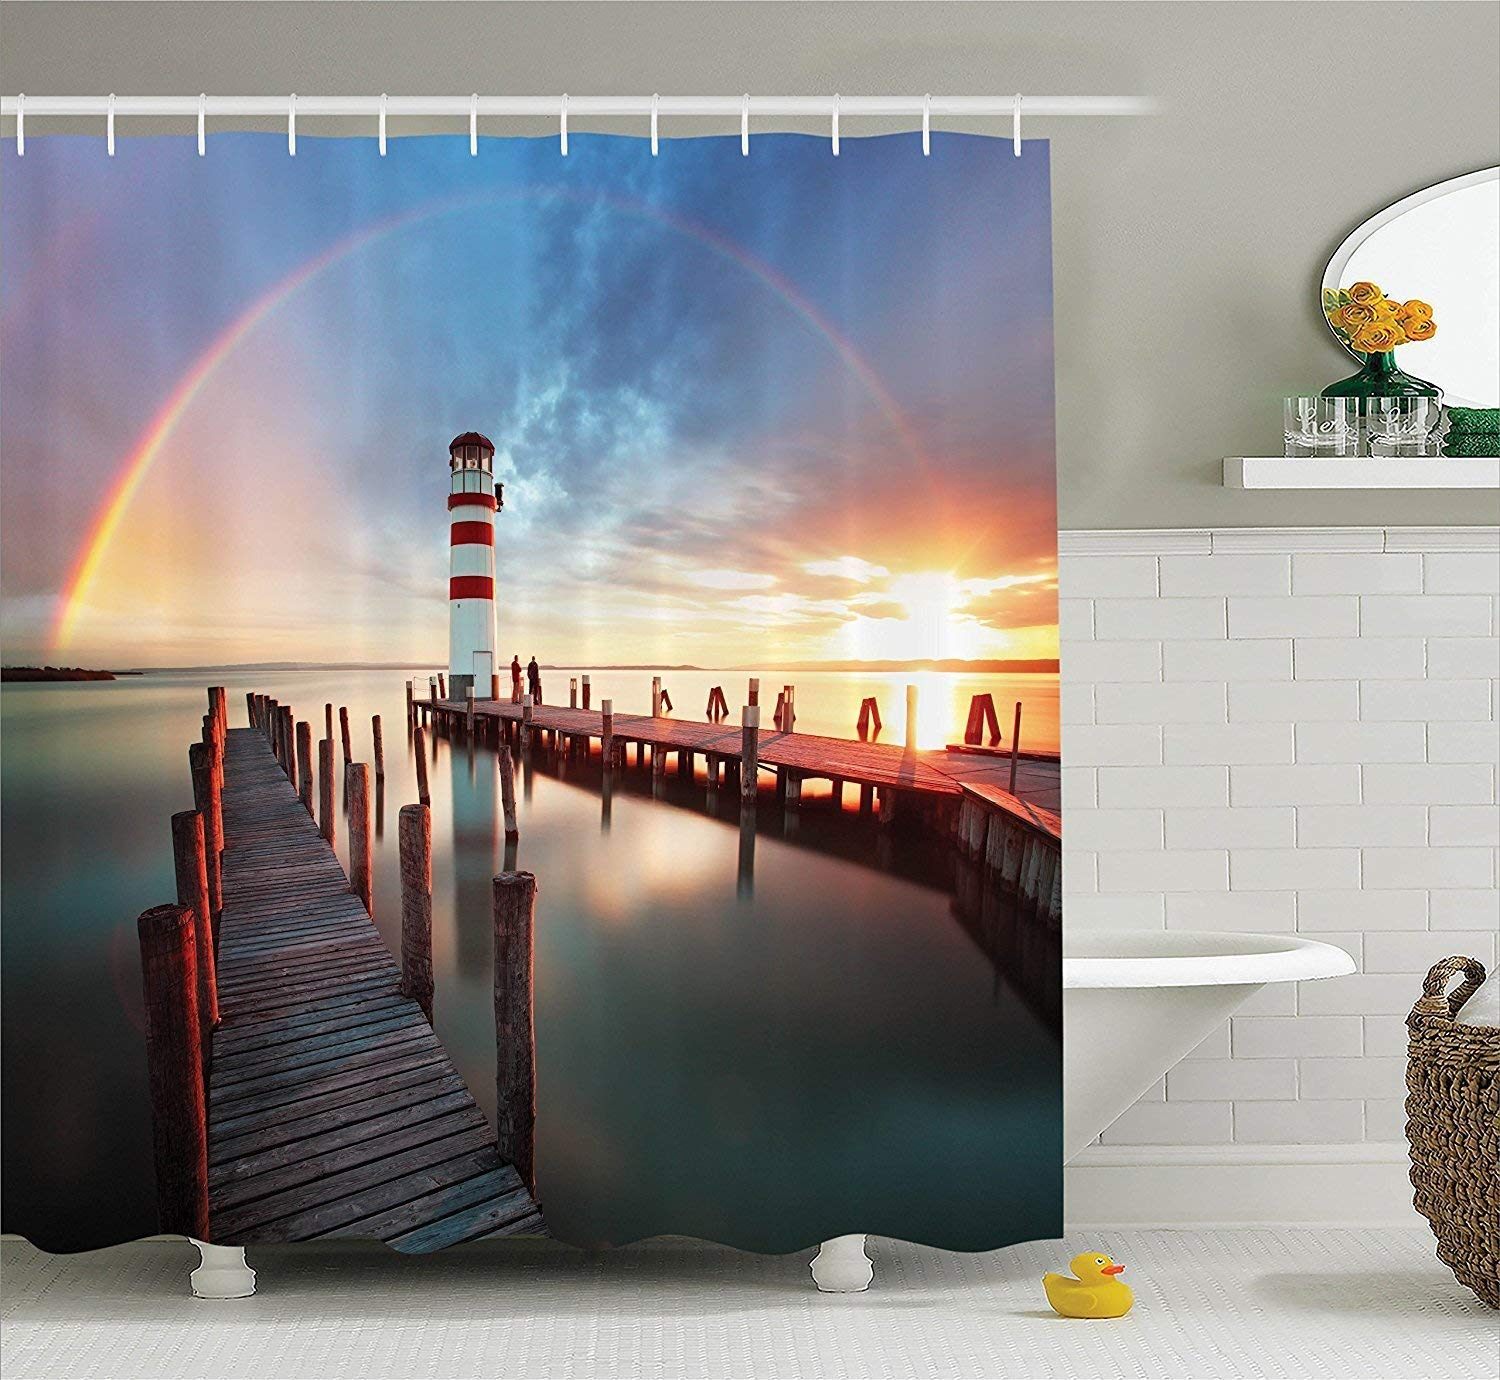 werert Shower Lighthouse Decor Shower werert Curtain Set, Sunset at Seaside with Wooden Docks Lighthouse Clouds Rainbow Waterfront Reflection, Bathroom Accessories,Multi 72 X 72 175ebd